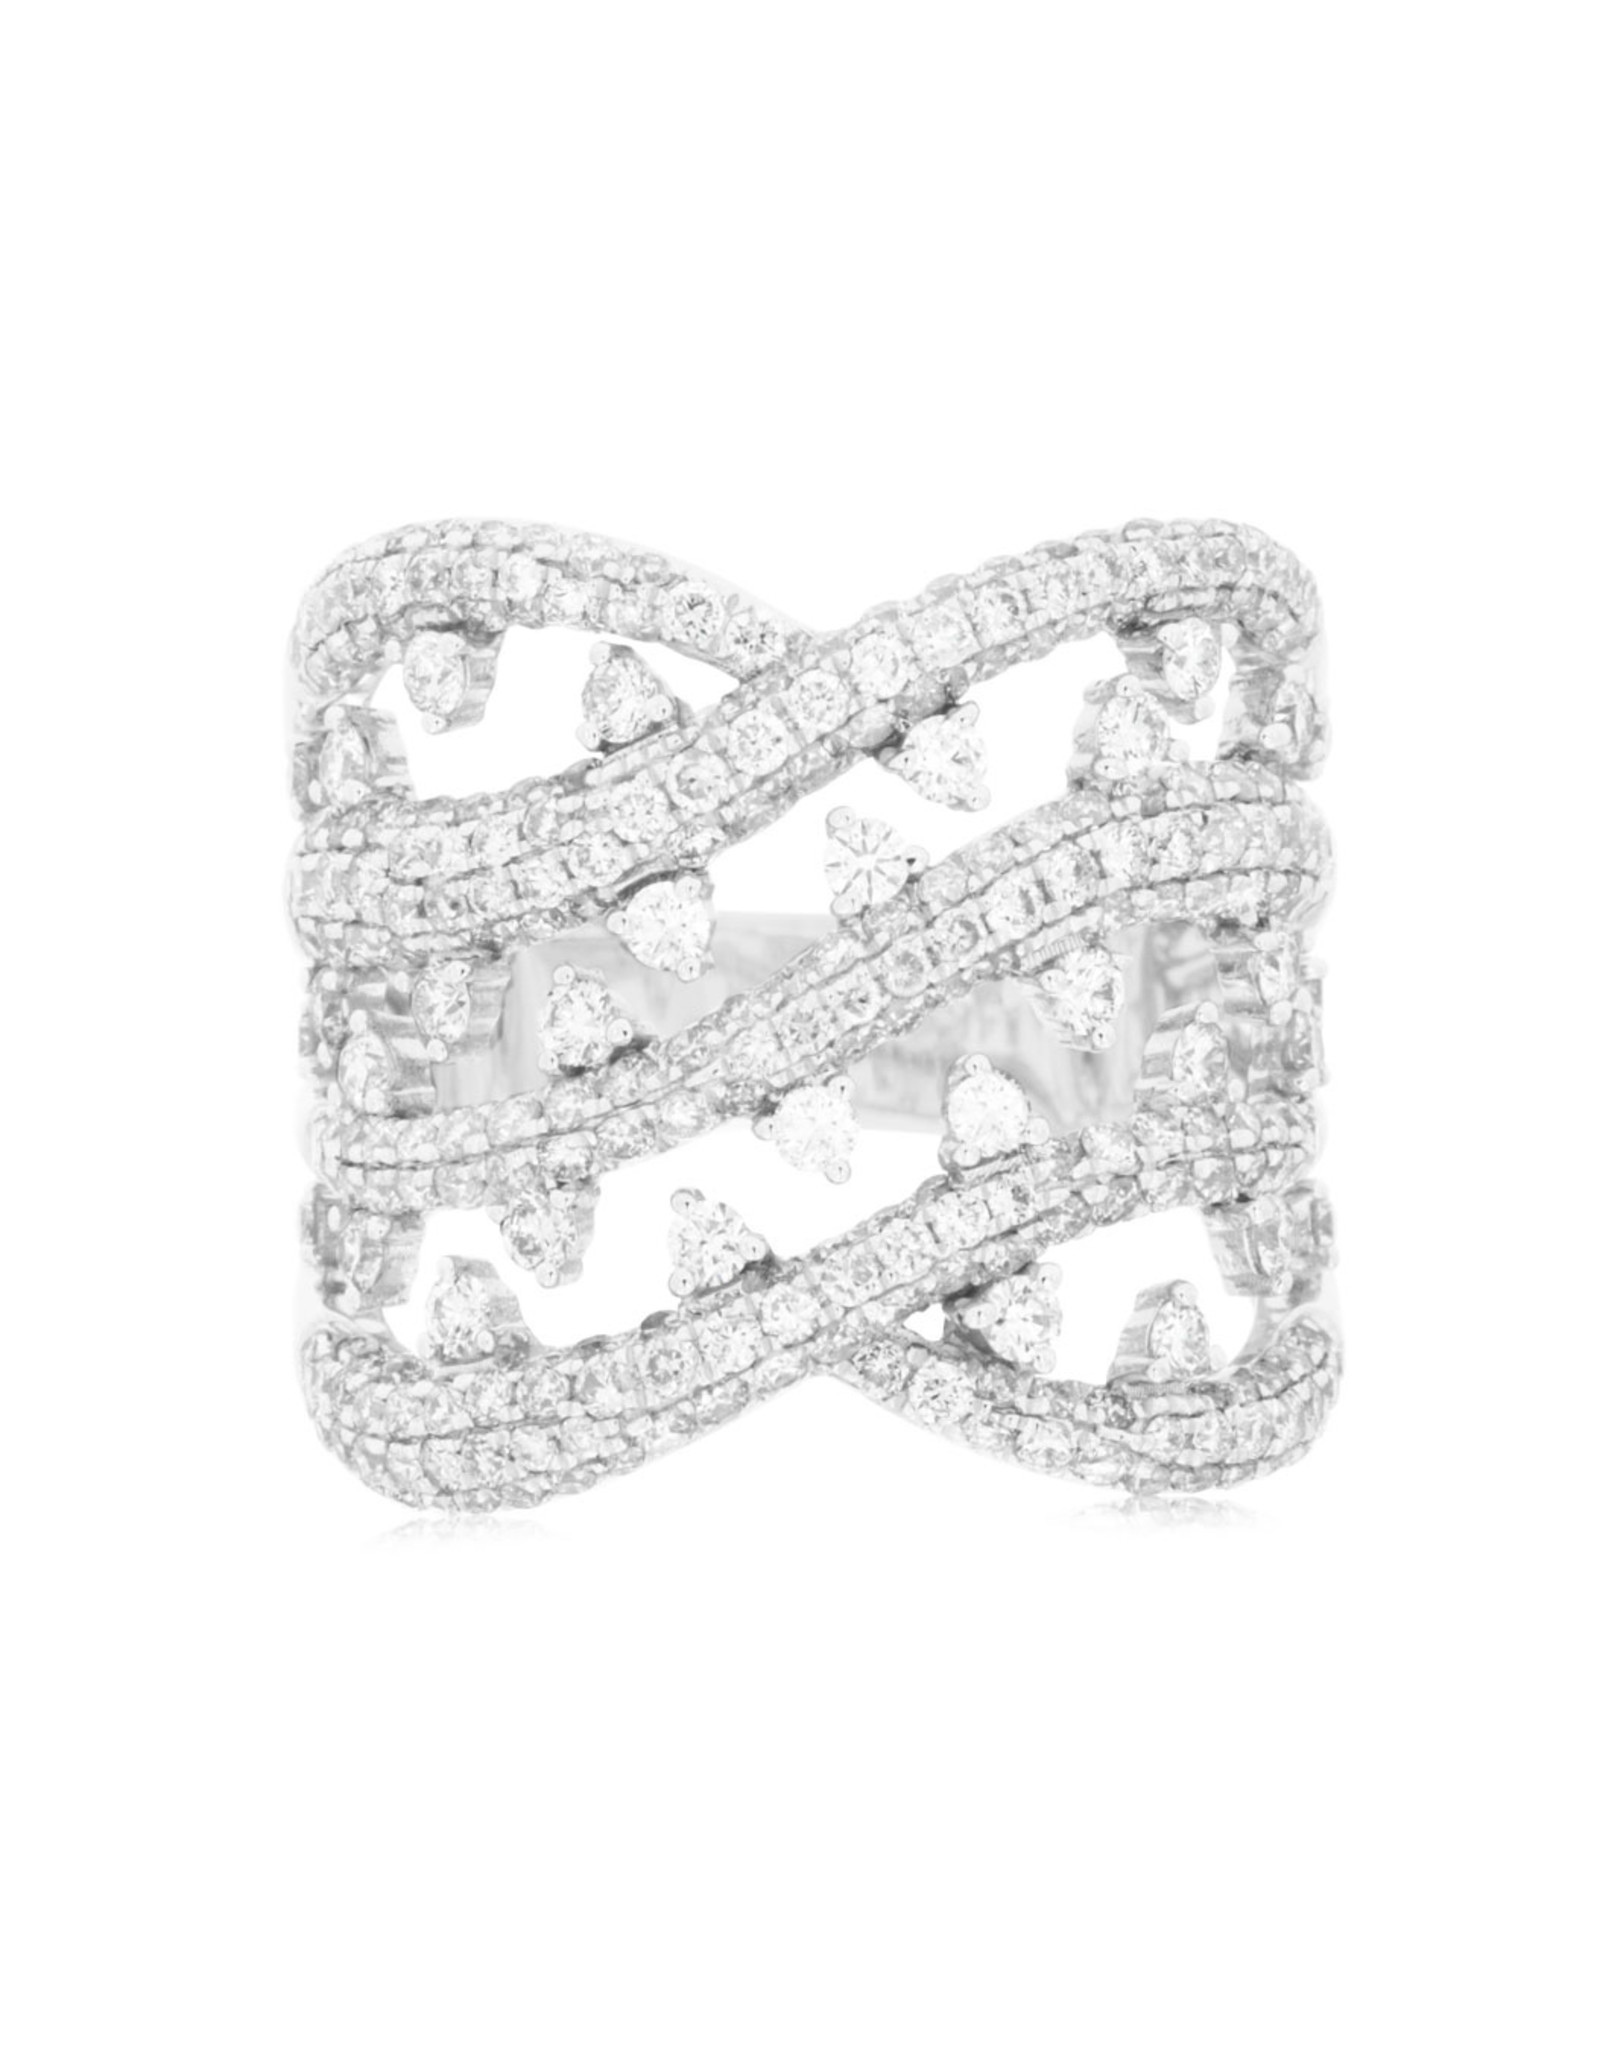 14K White Gold Fancy Diamond Statement Ring, D: 2ct